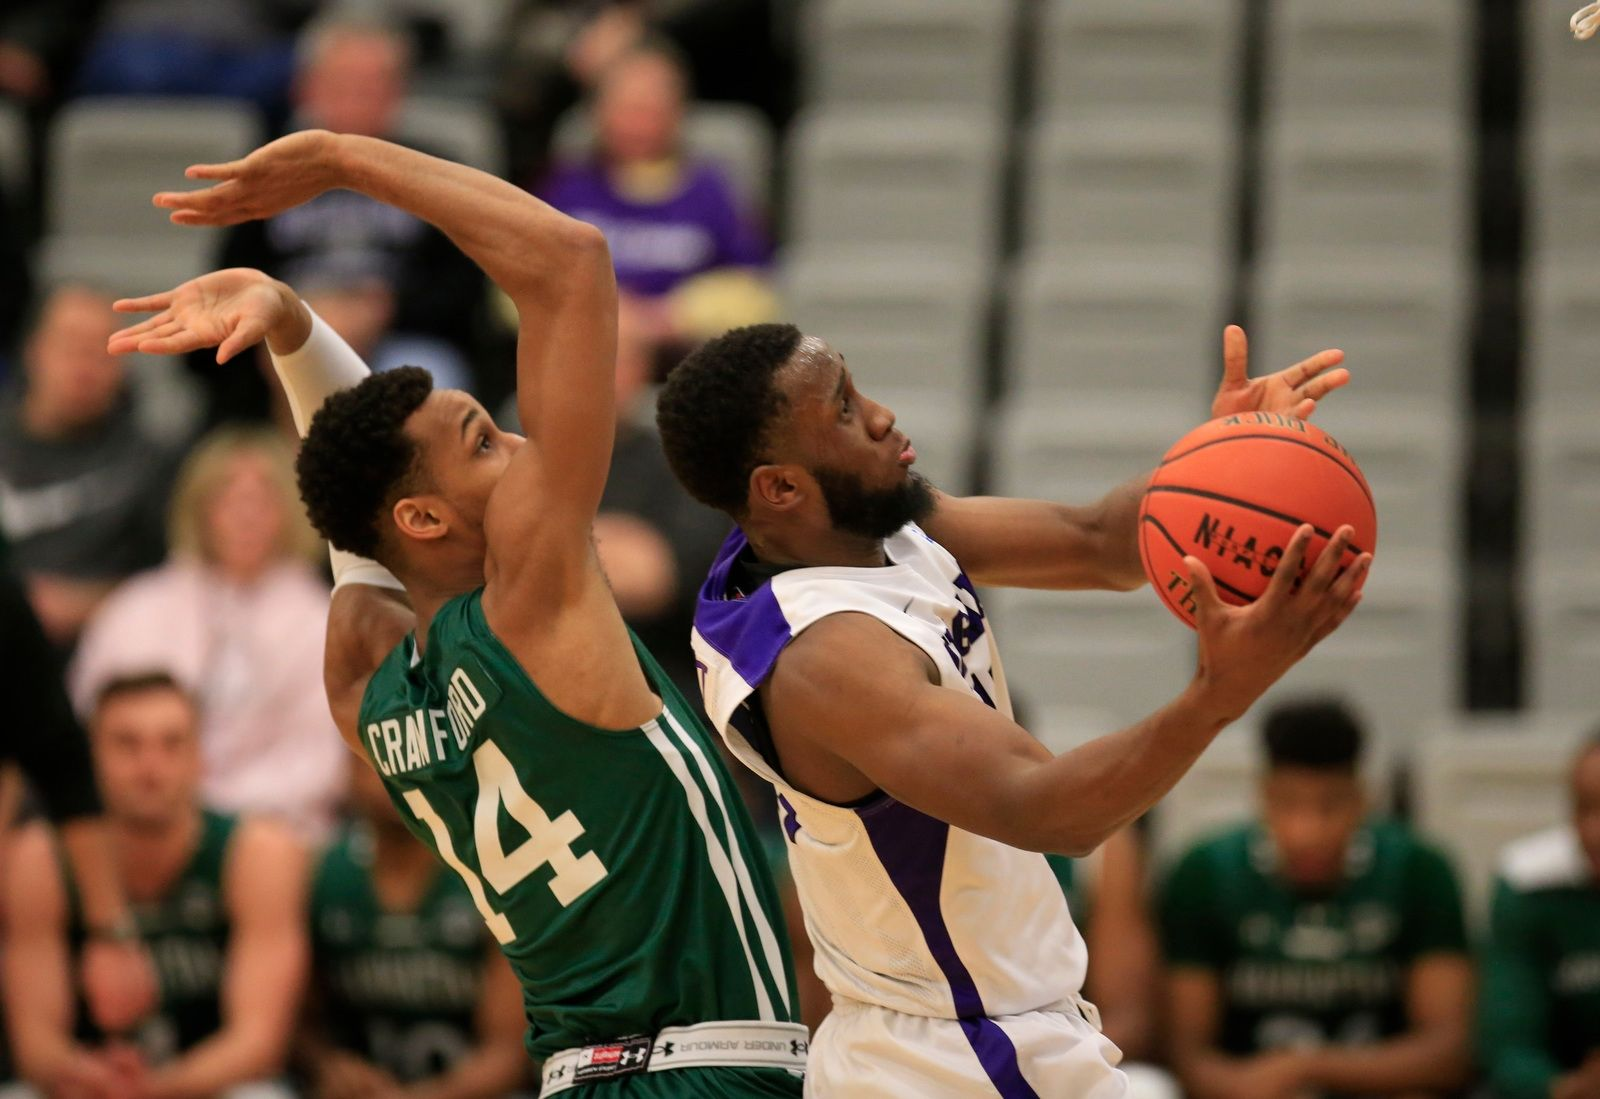 Niagarau2019s Marvin Prochet drives past Manhattan defender Calvin Crawford during first half action at the Gallagher center on Wednesday, Jan. 24, 2018.